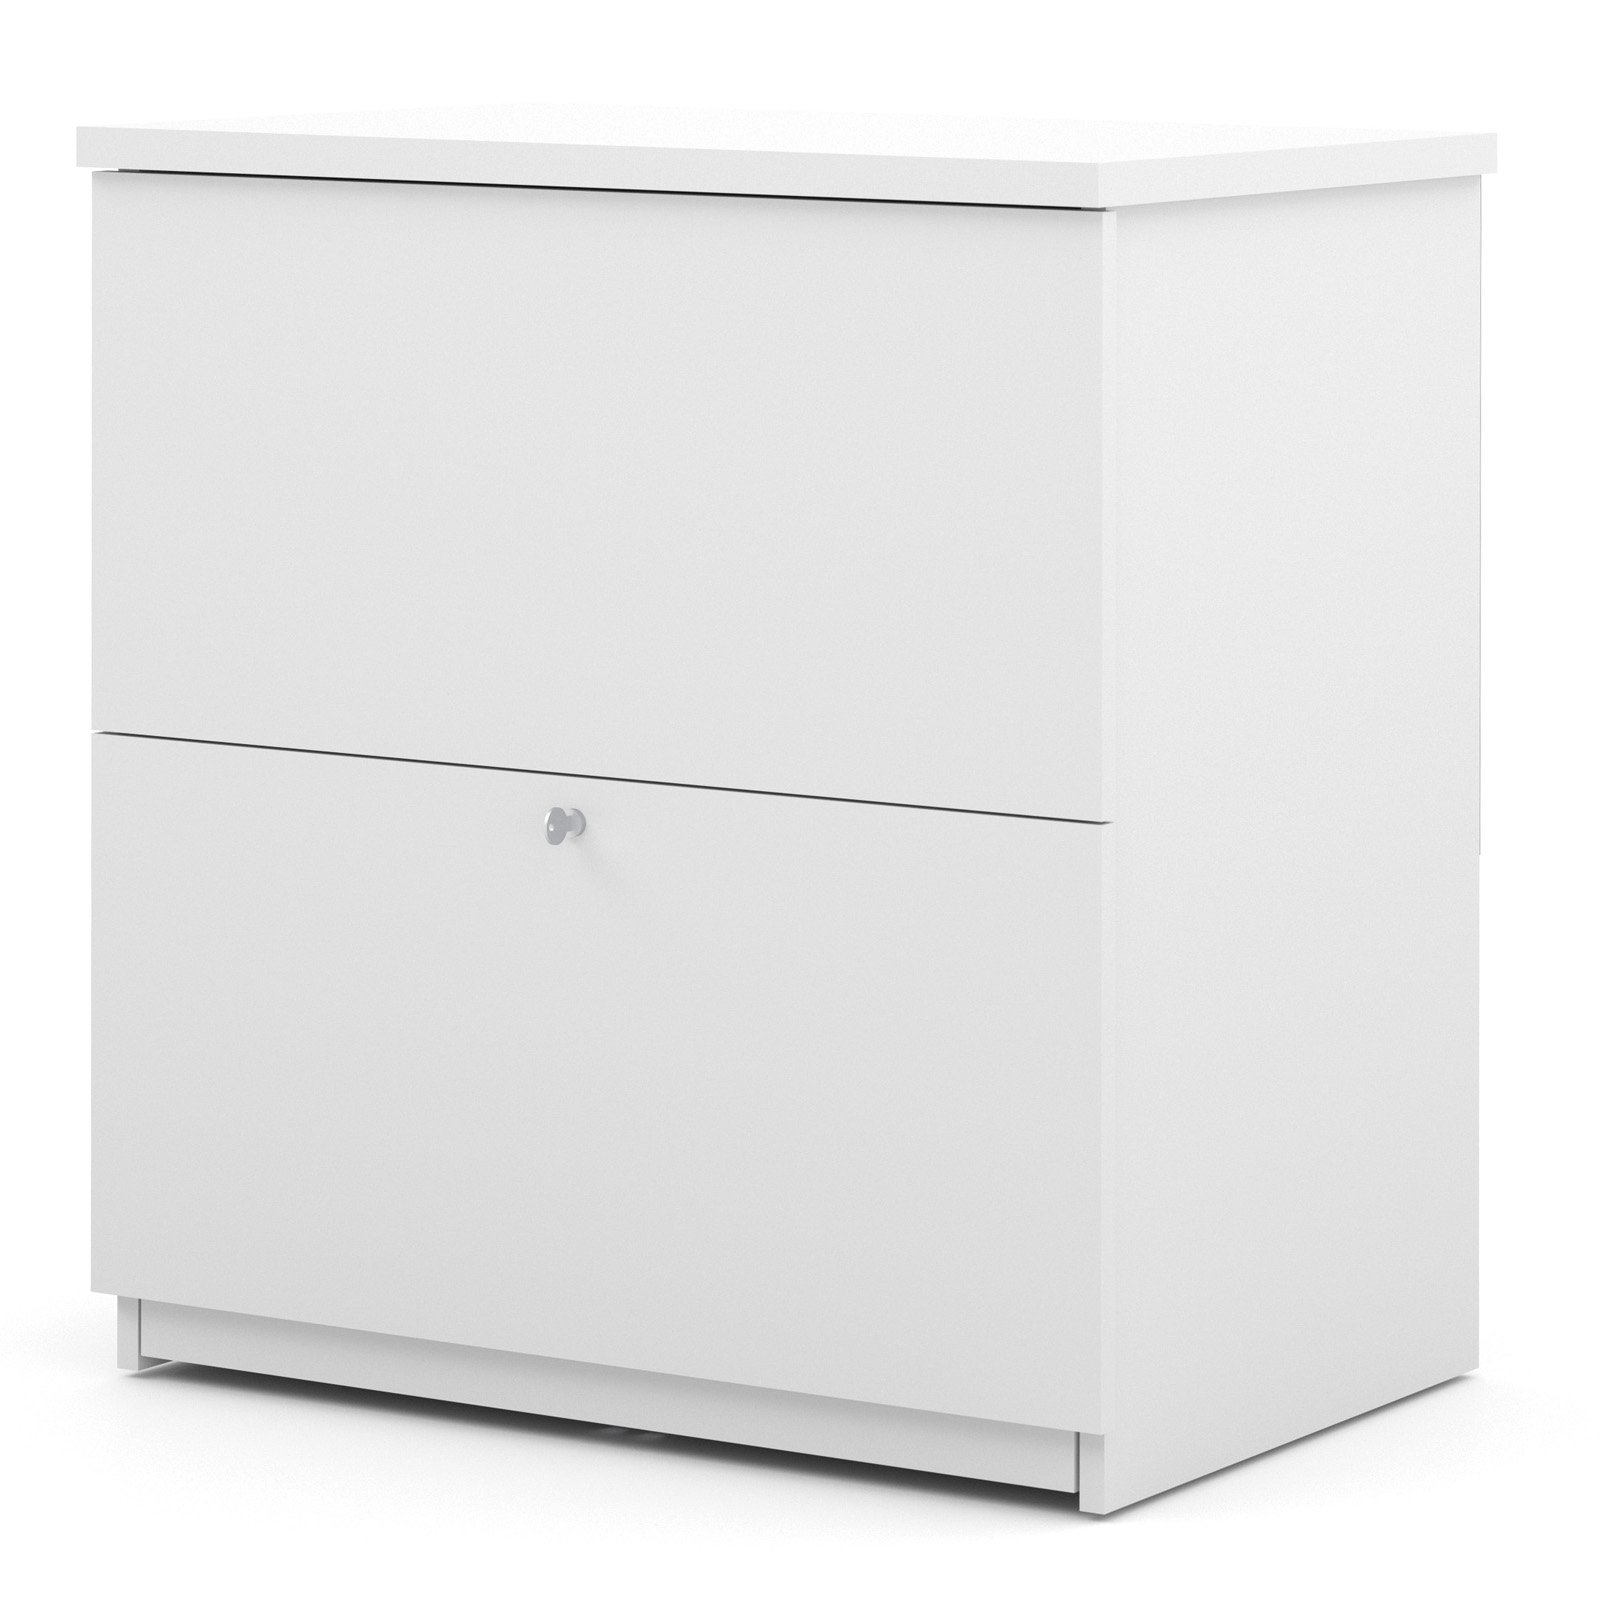 Bestar 2 Drawer Lateral Wood Lockable Filing Cabinet, White by Bestar